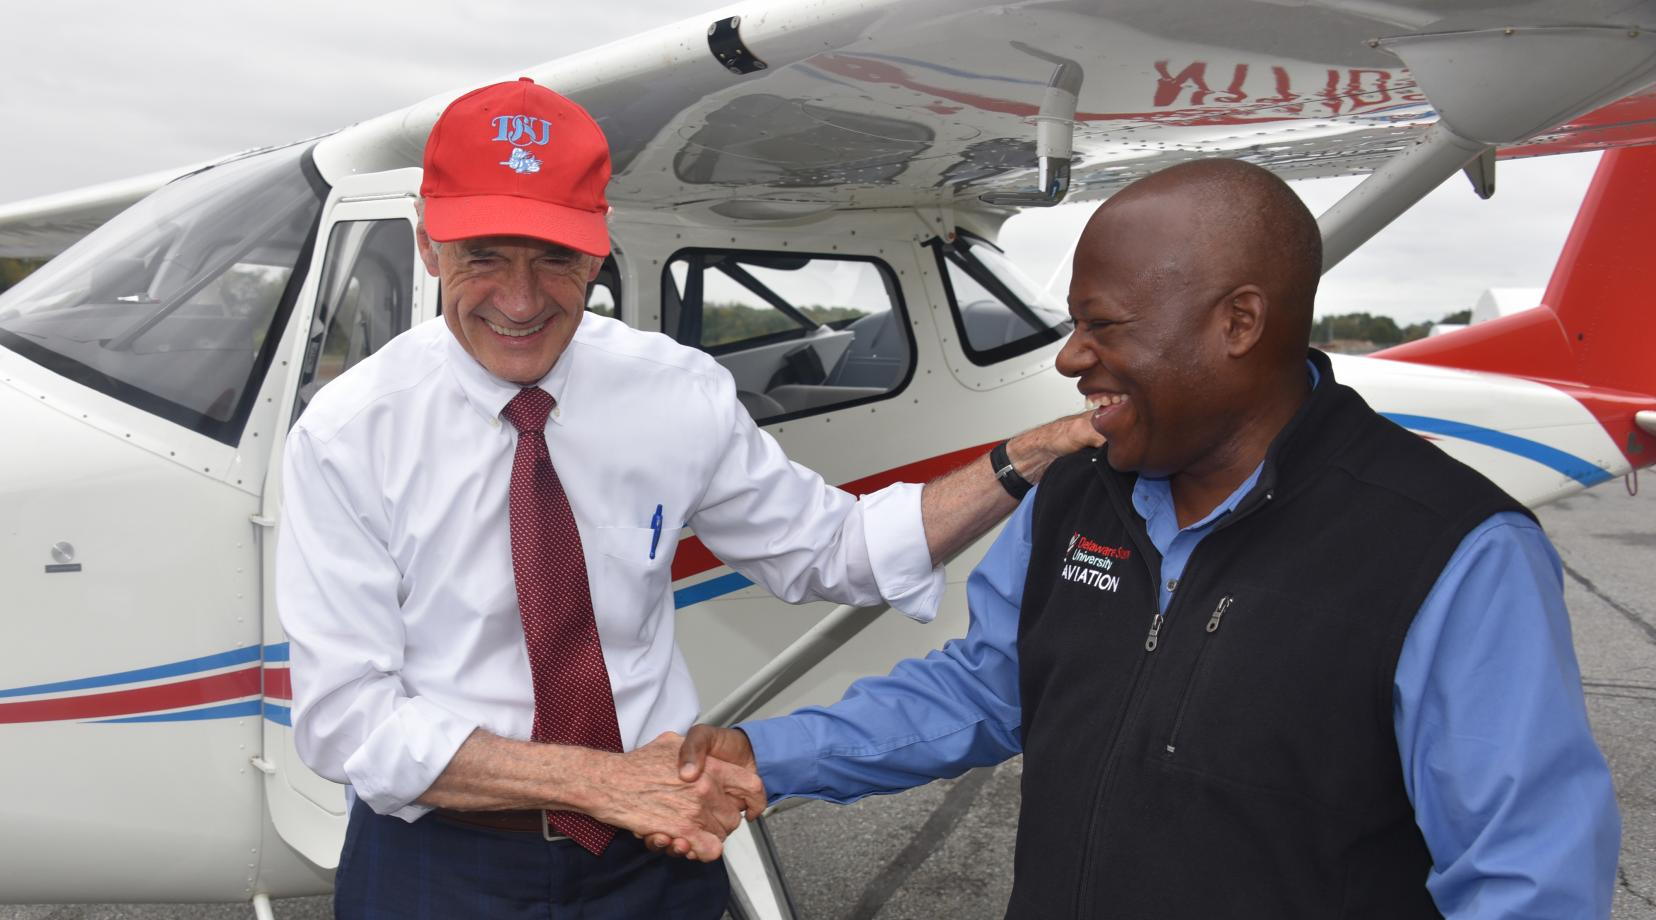 <p>U.S. Sen. Tom Carper shakes hands with Lt. Col. Michael Hales, director of the University&#039;s Aviation Program, after the elected official flew one of the new planes recently acquired by Del State. Sen. Carper is a former naval aviator.</p>